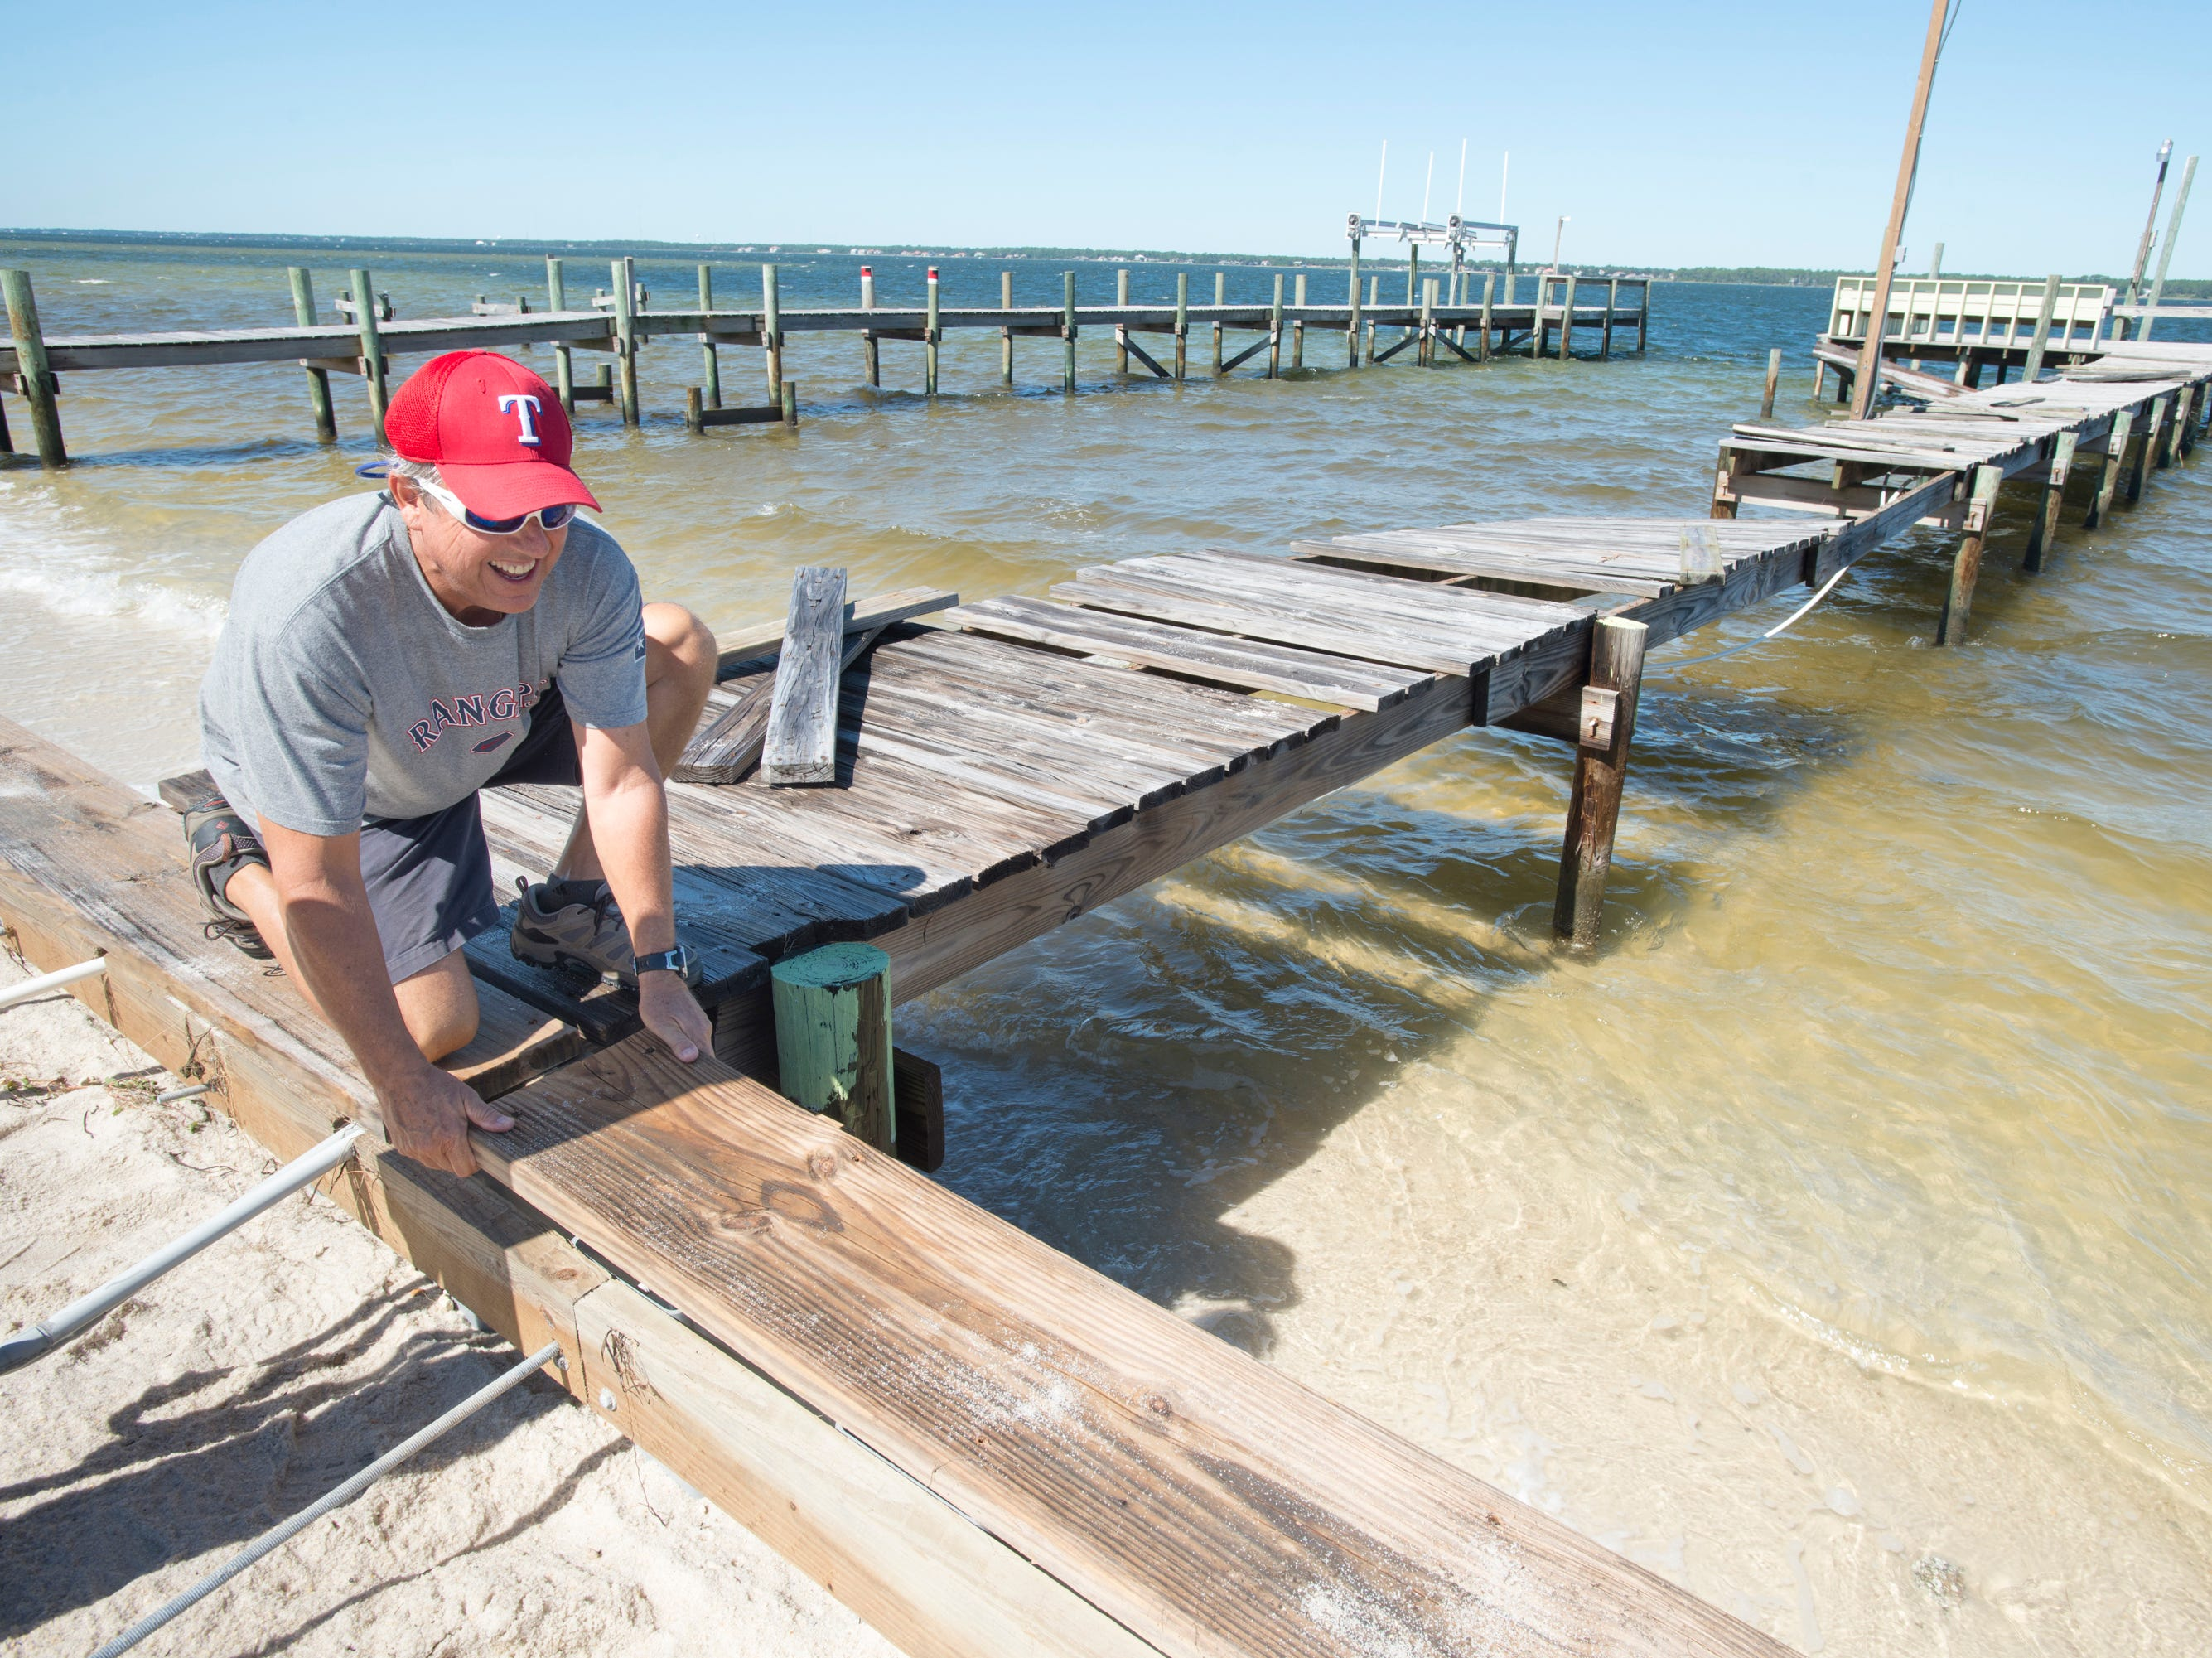 Pepe Fernandez works on repairing his dock along Grand Navarre Blvd. in Navarre on Thursday, October 11, 2018.  Fernanadez explained that he is grateful that nothing else was damaged during Hurricane Michael and that it could have been much worse.